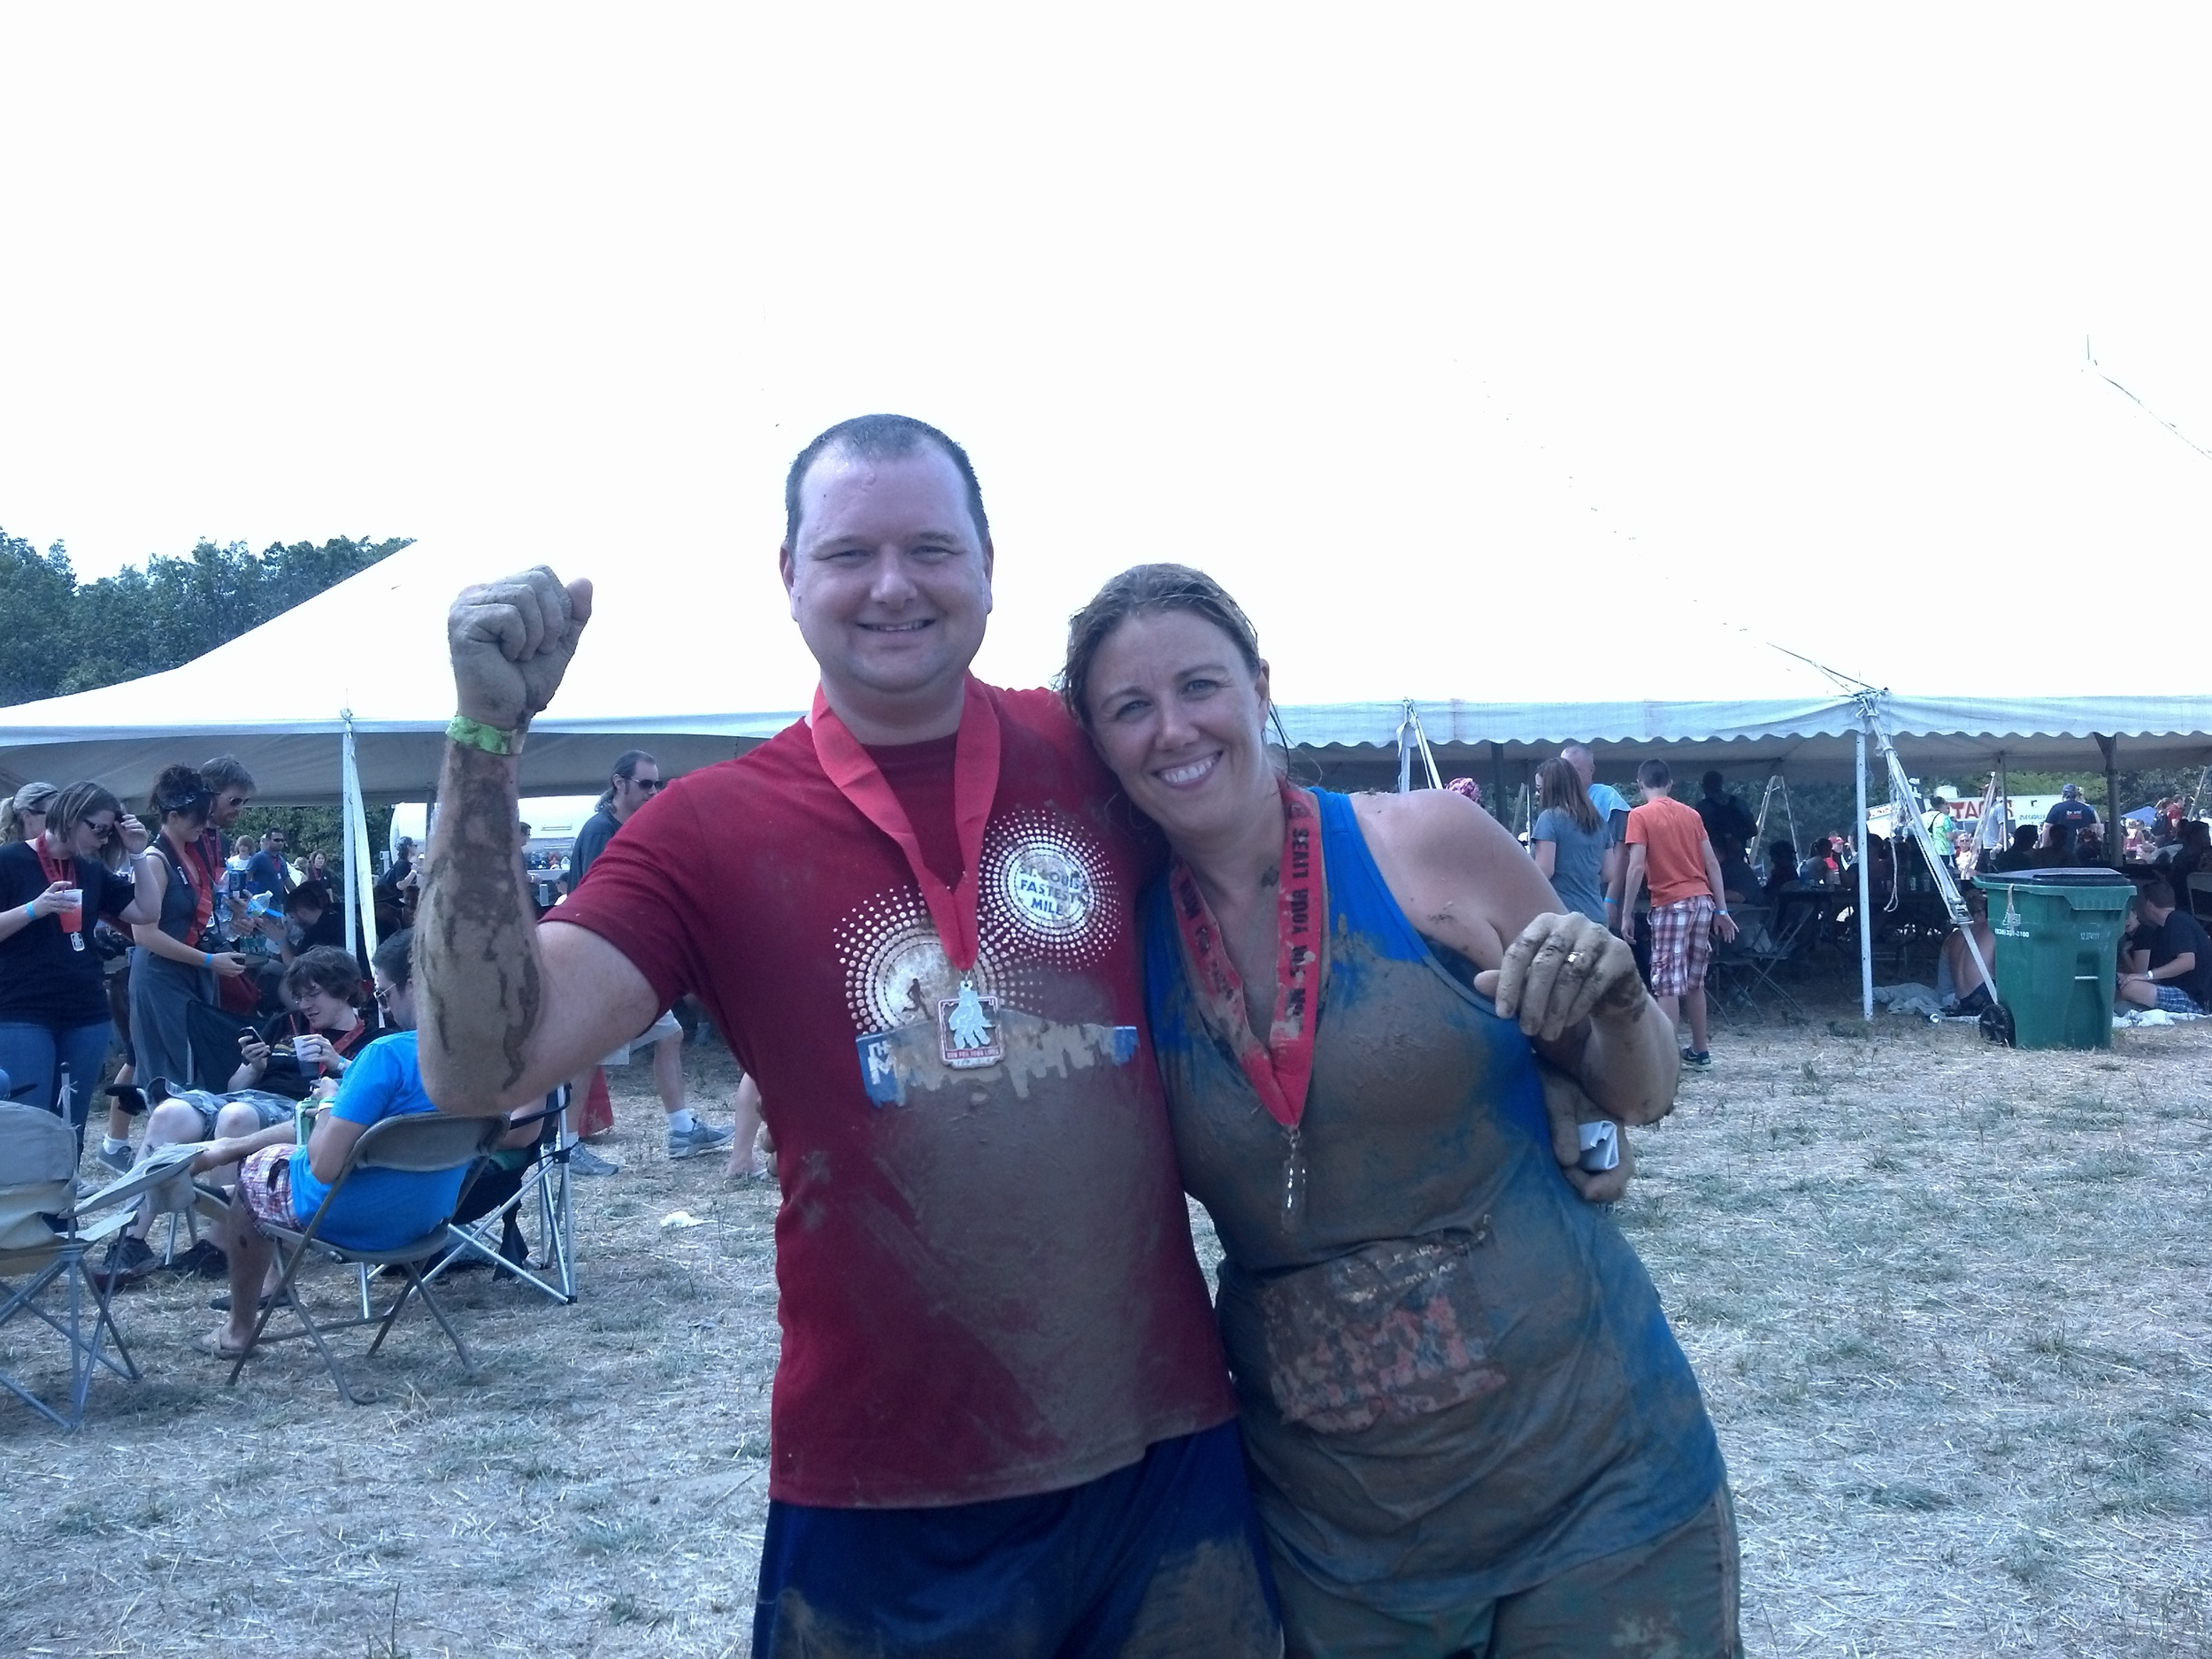 Eric and me at a zombie run in 2011. I died and Eric cheated, but I guess if they were real zombies, cheating wouldn't matter.